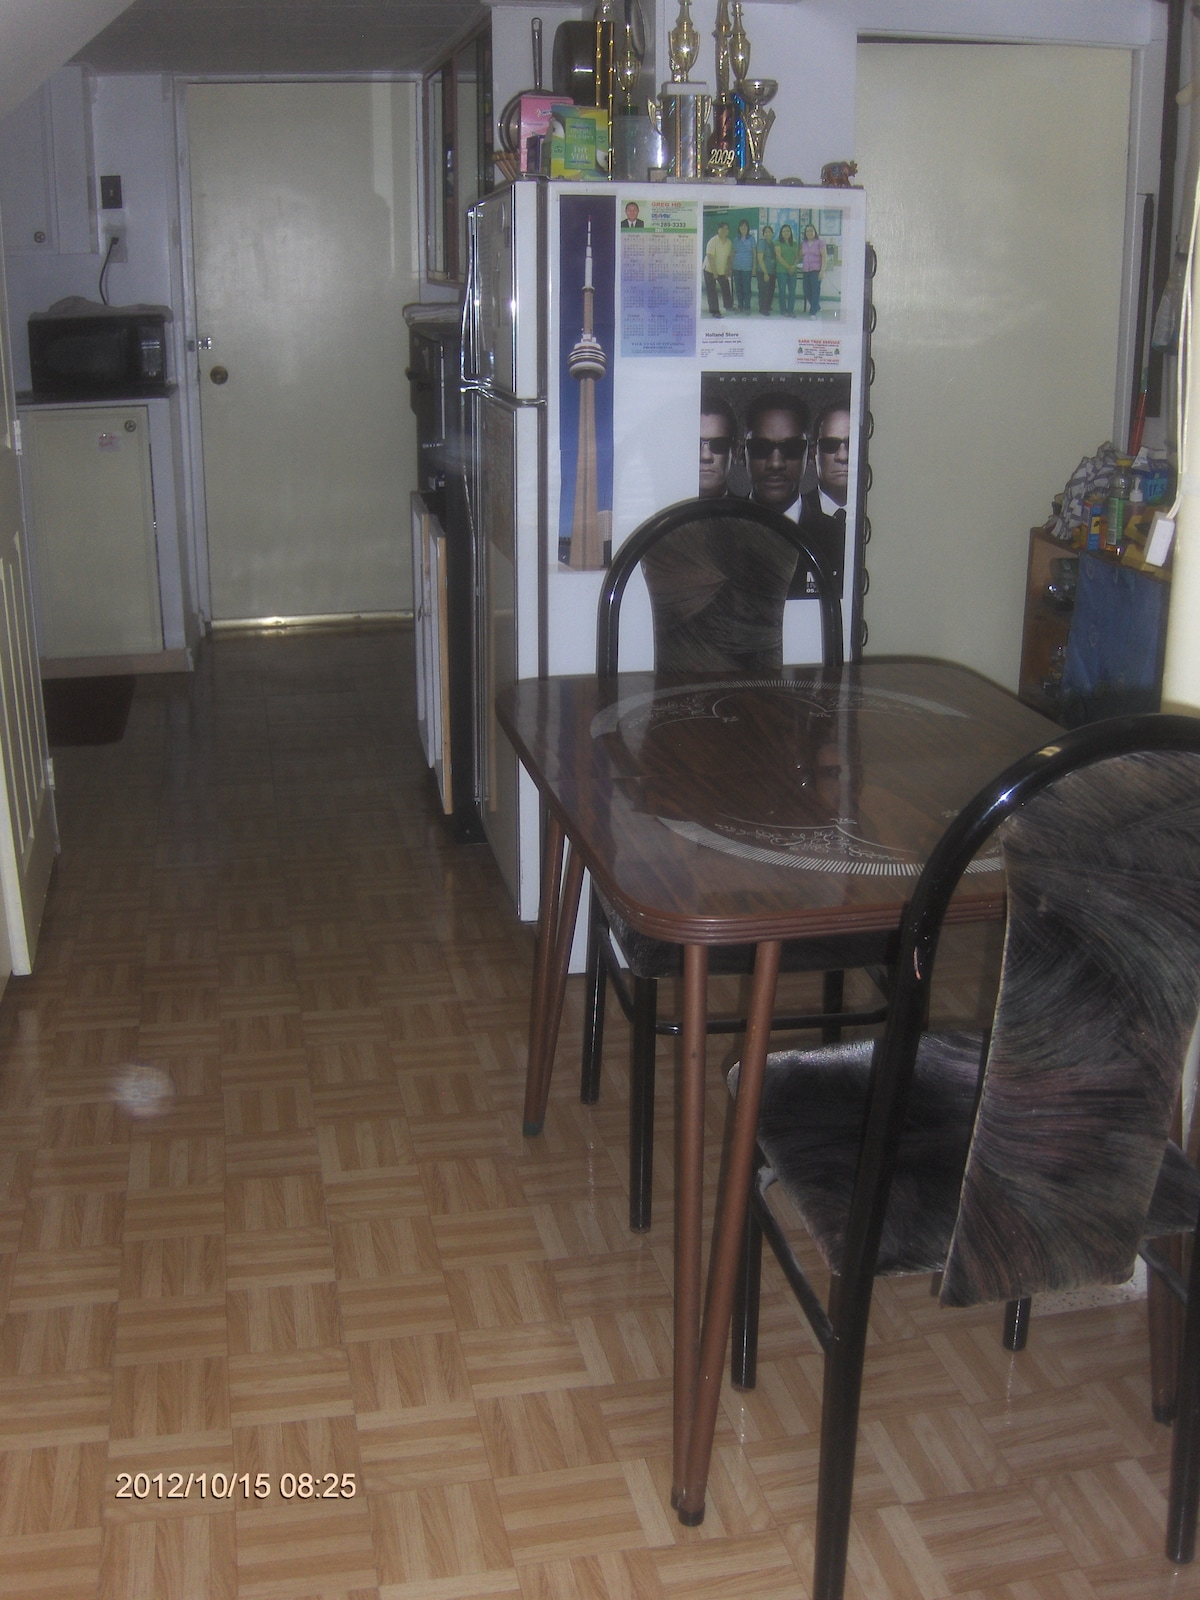 Shared fridge and eating table. .